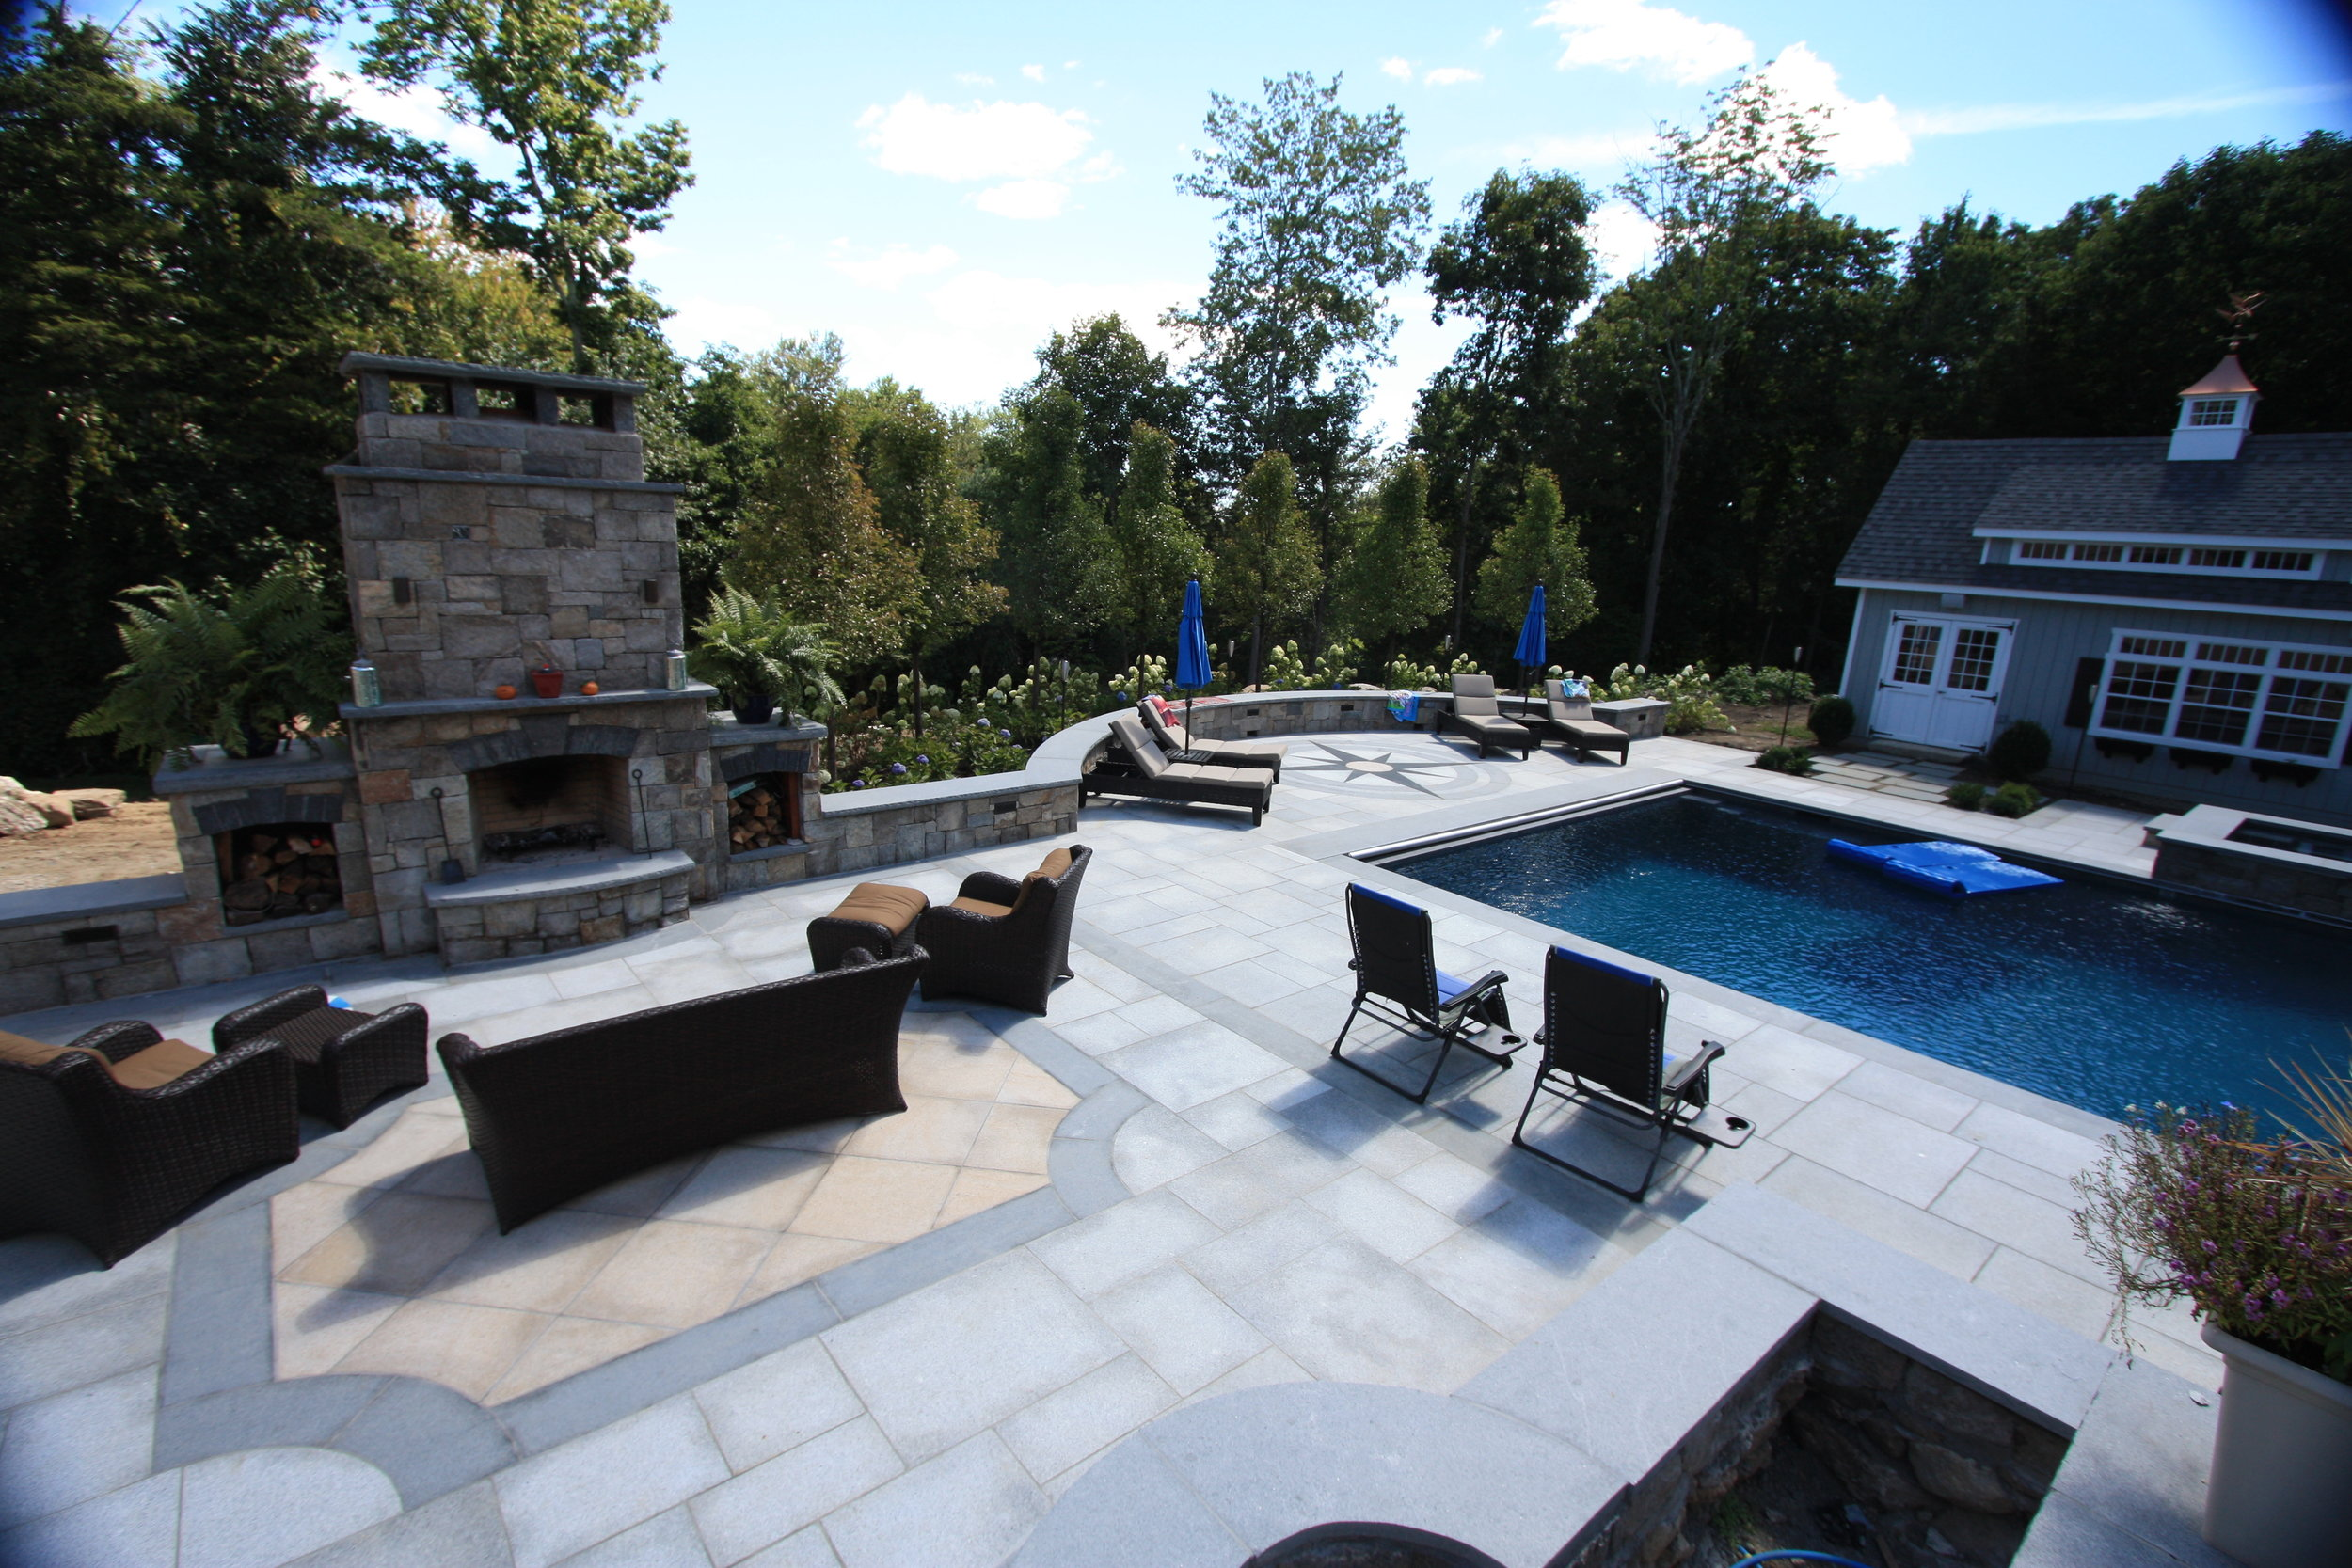 MATERIALS USED: NEWPORT DARK GRANITE PATIO WITH FALMOUTH BUFF GRANITE CENTER ACCENT. CT FIELDSTONE, SQUARE CUT FIREPLACE PHOTO CREDIT: MIMMO CARATOZZOLO